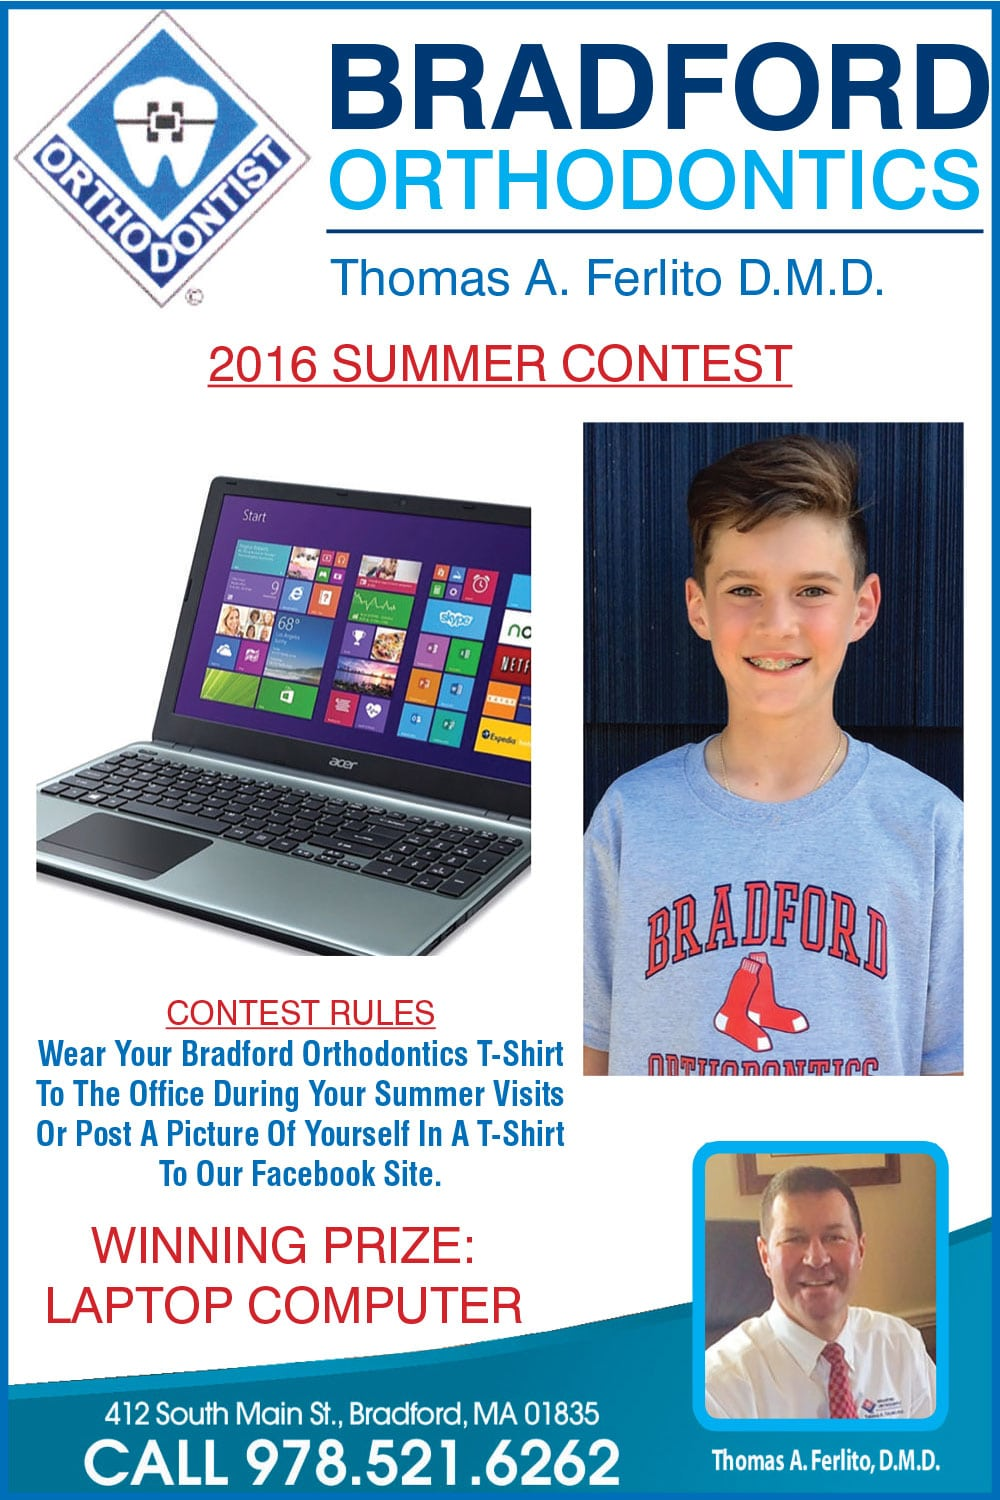 dr-tom-ferlito-bradord-orthodontics-braford-ma-summer-contest